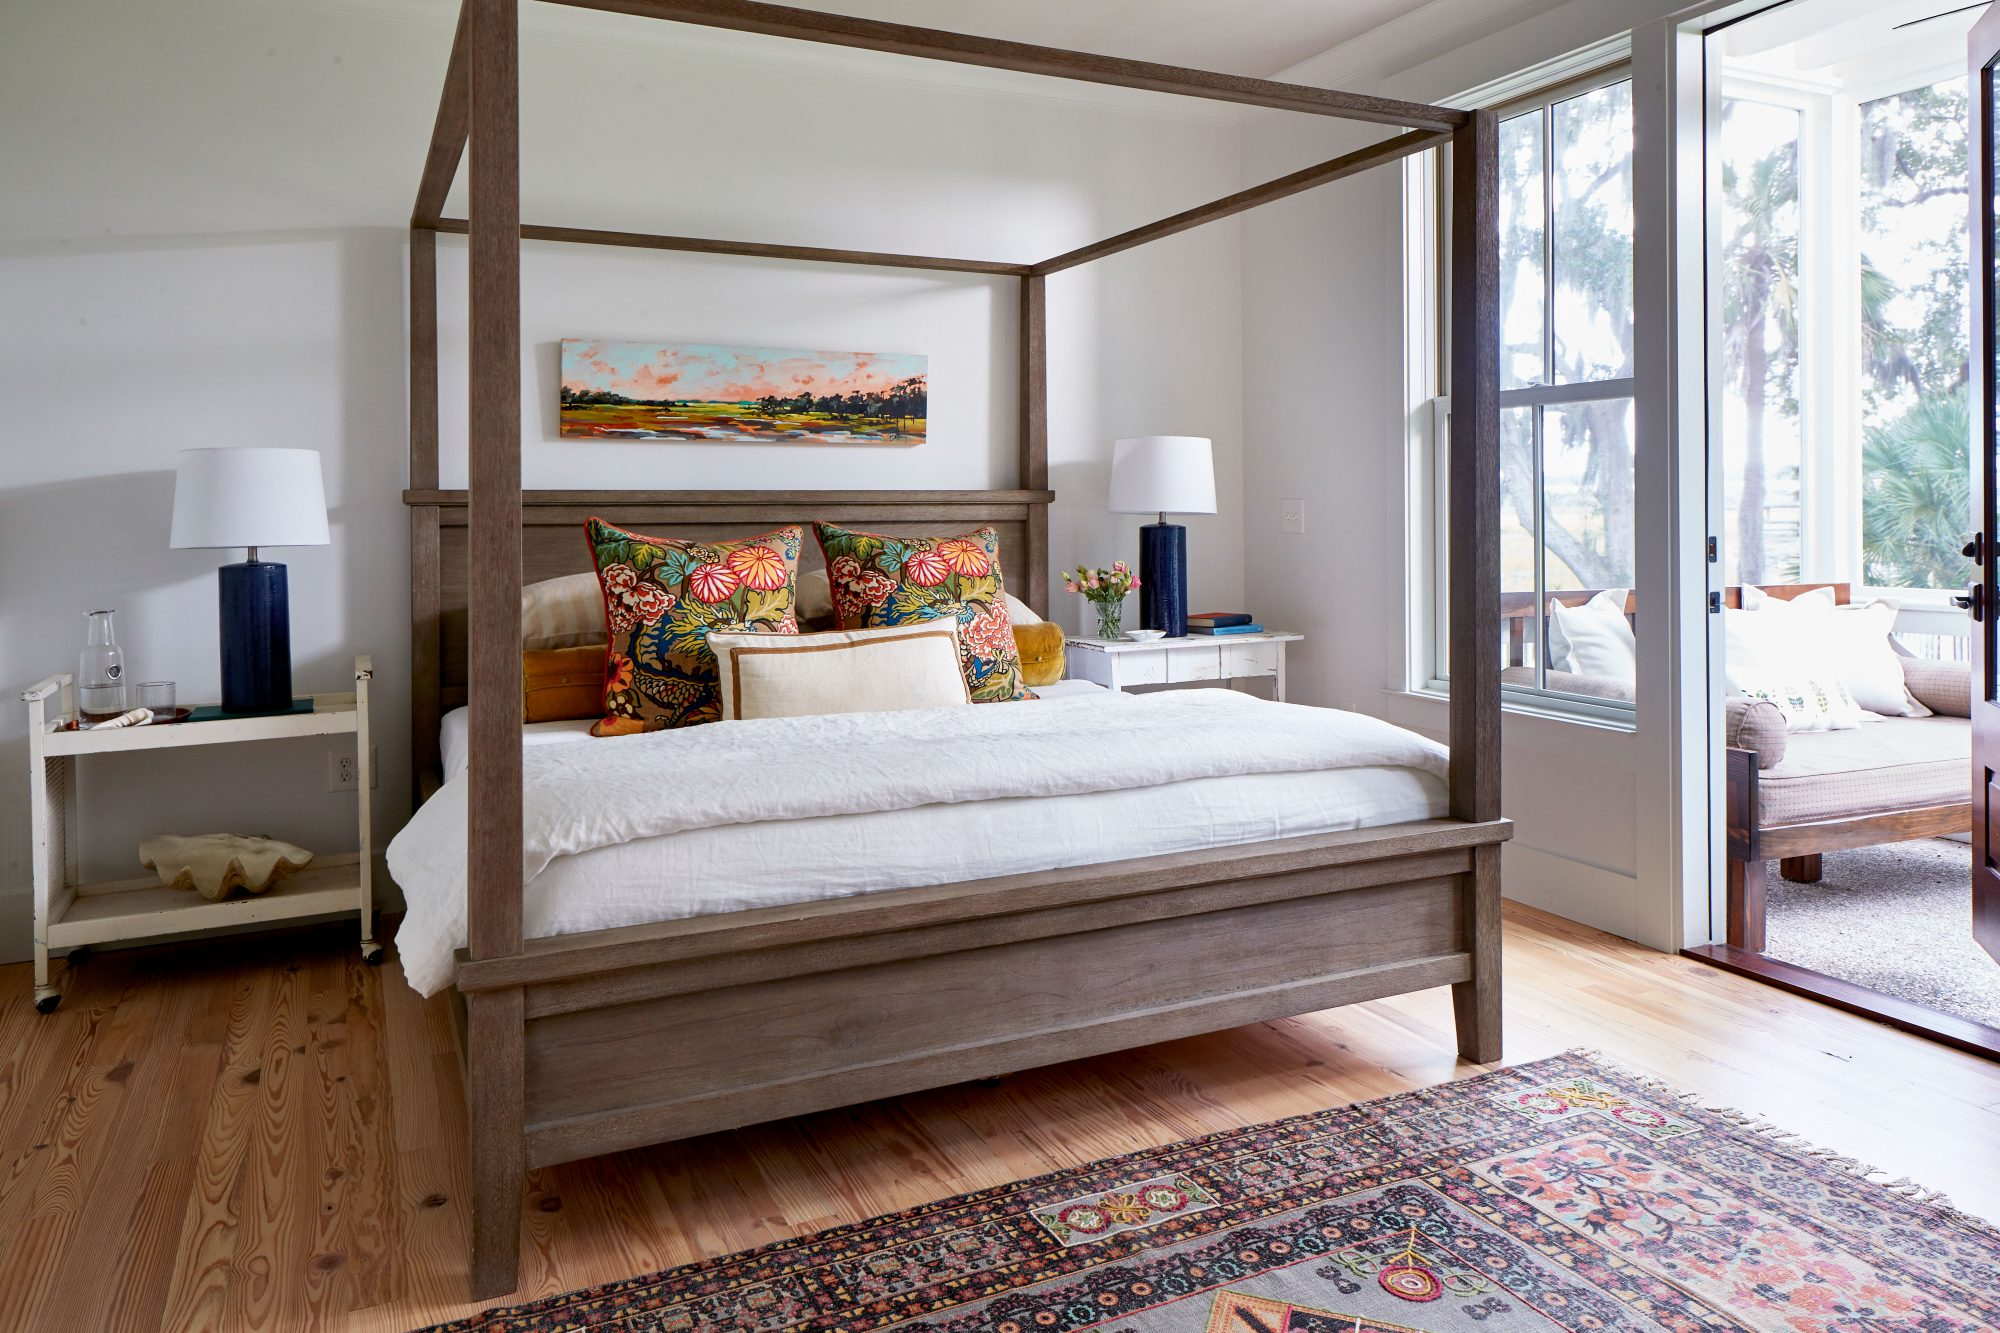 Watson Family Farmhouse Master Bedroom in Savannah, GA